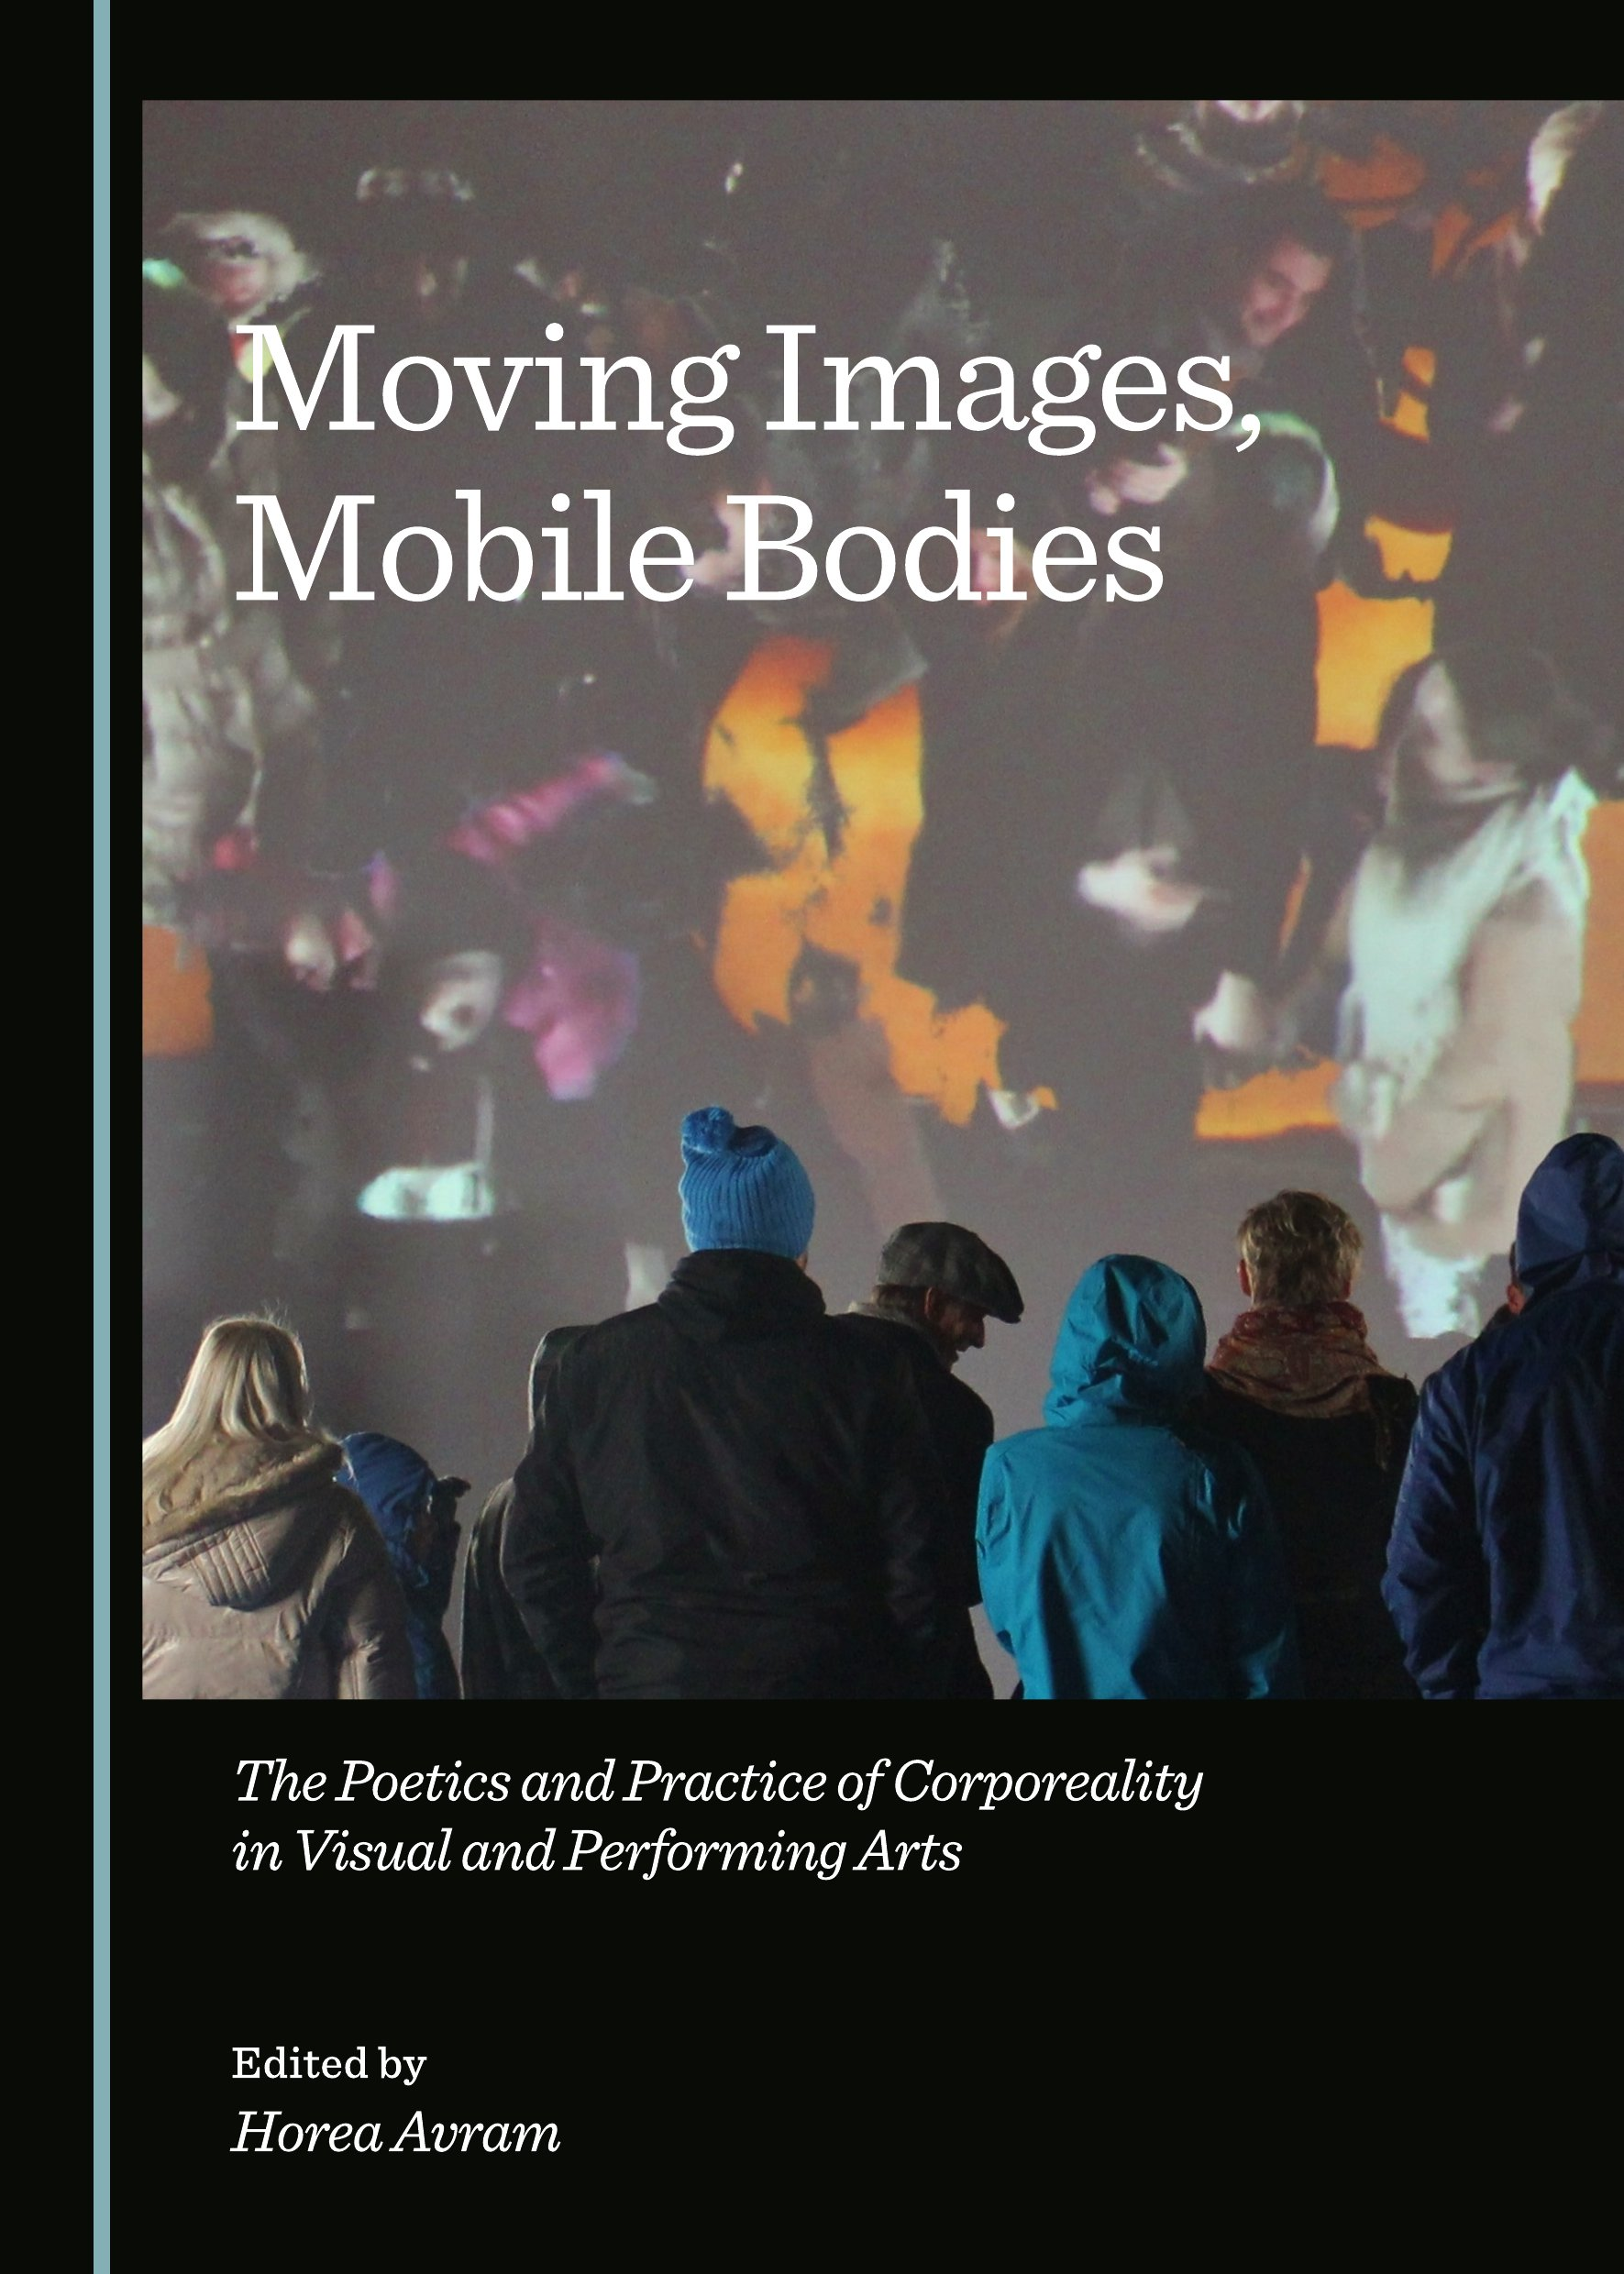 Moving Images, Mobile Bodies: The Poetics and Practice of Corporeality in Visual and Performing Arts